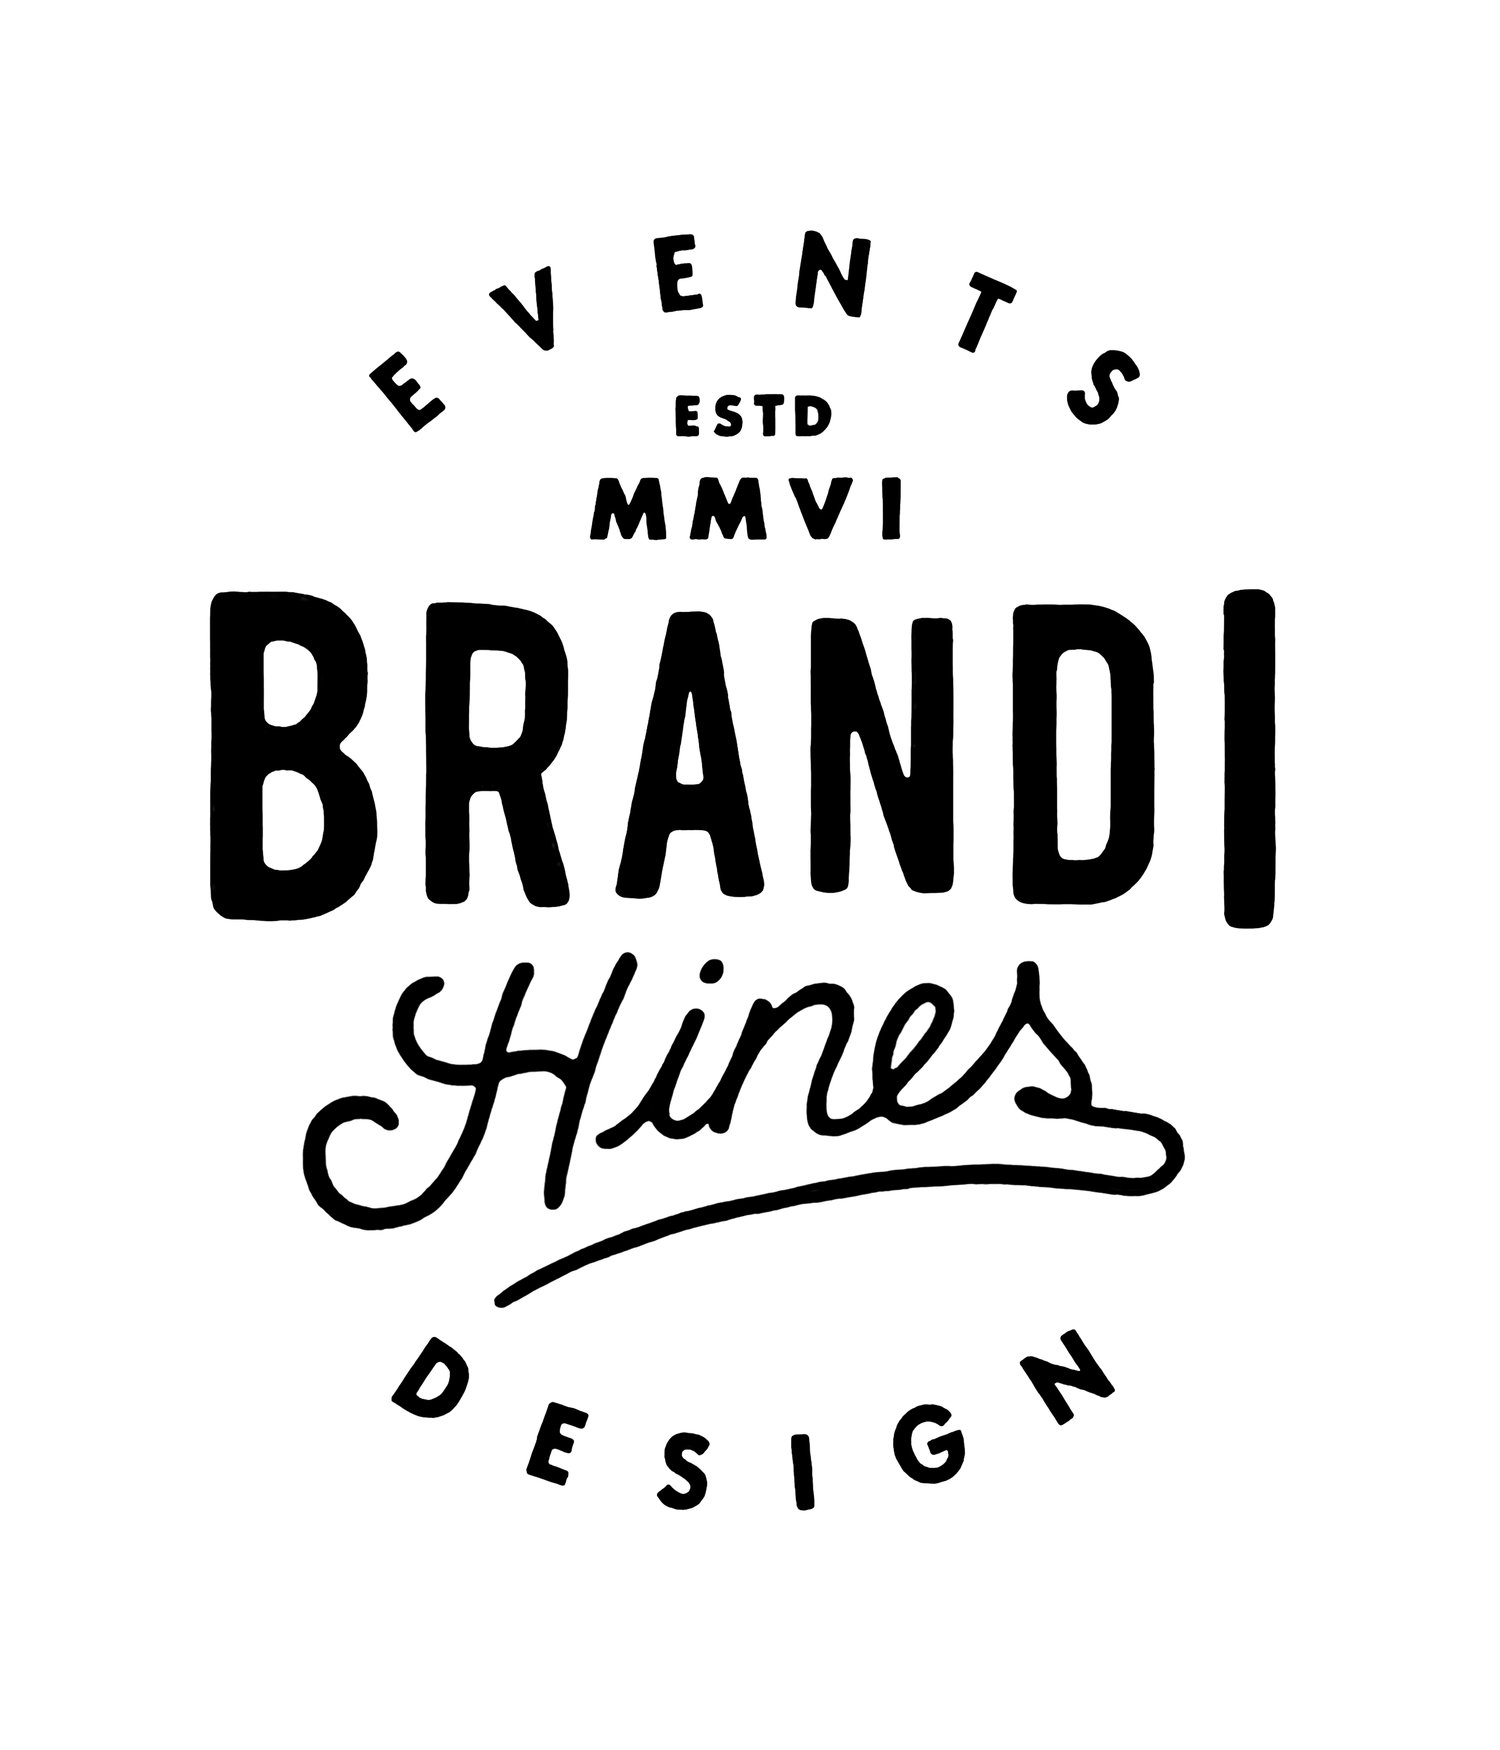 Brandi Hines Events + Design